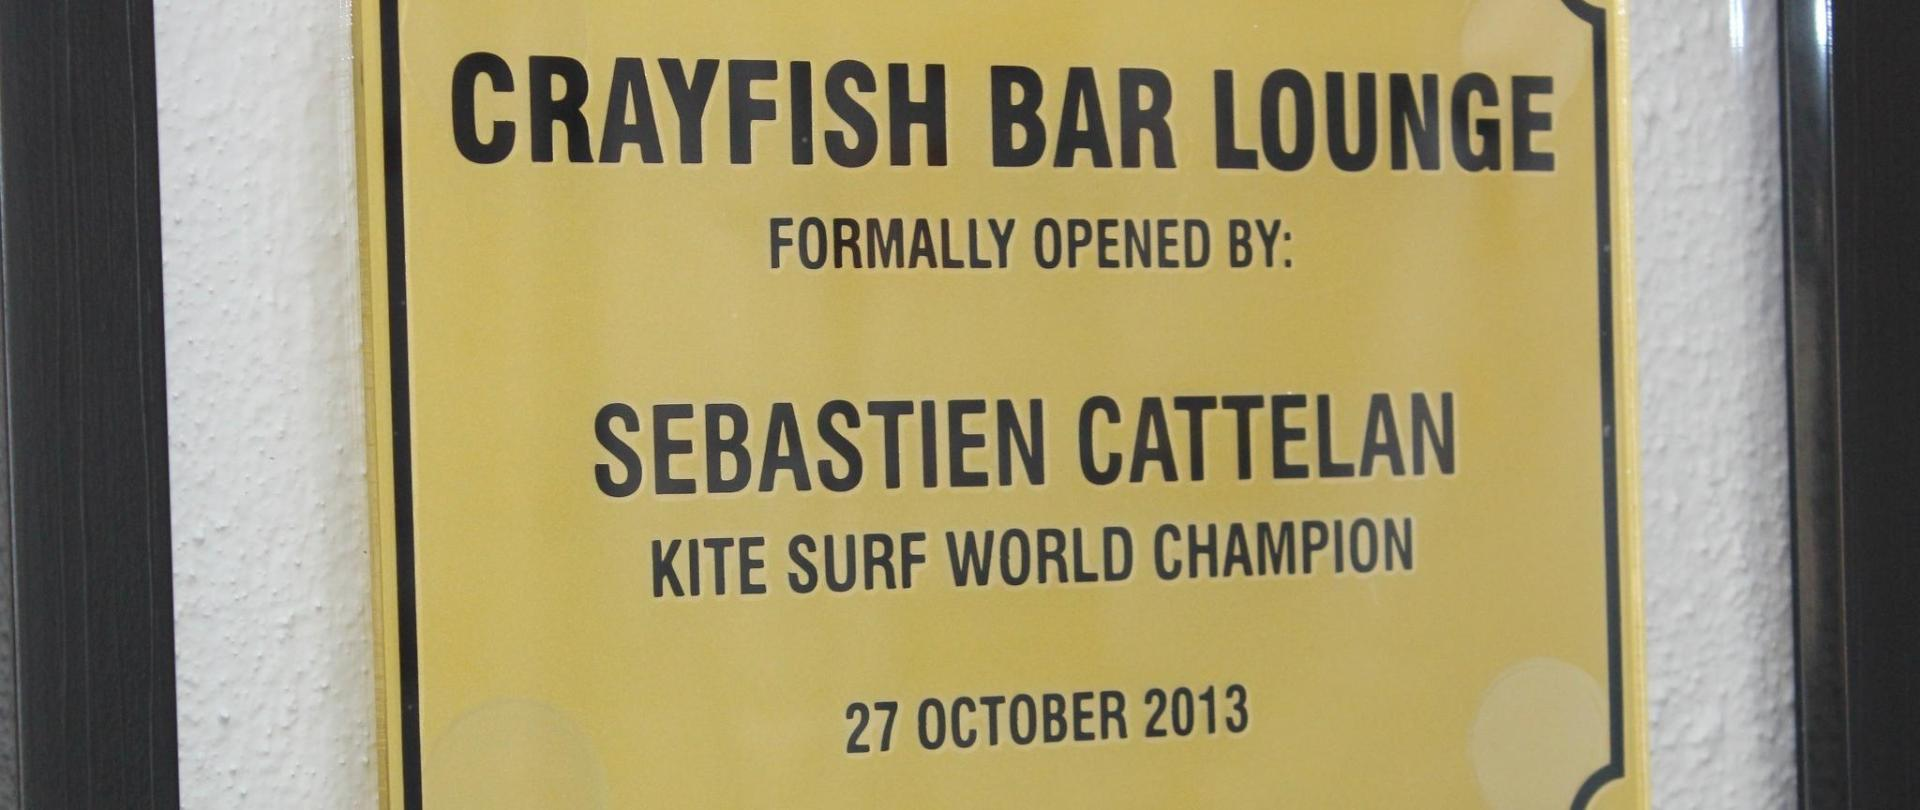 2017 LNH CRAYFISH BAR & LOUNGE PLAQUE.jpg